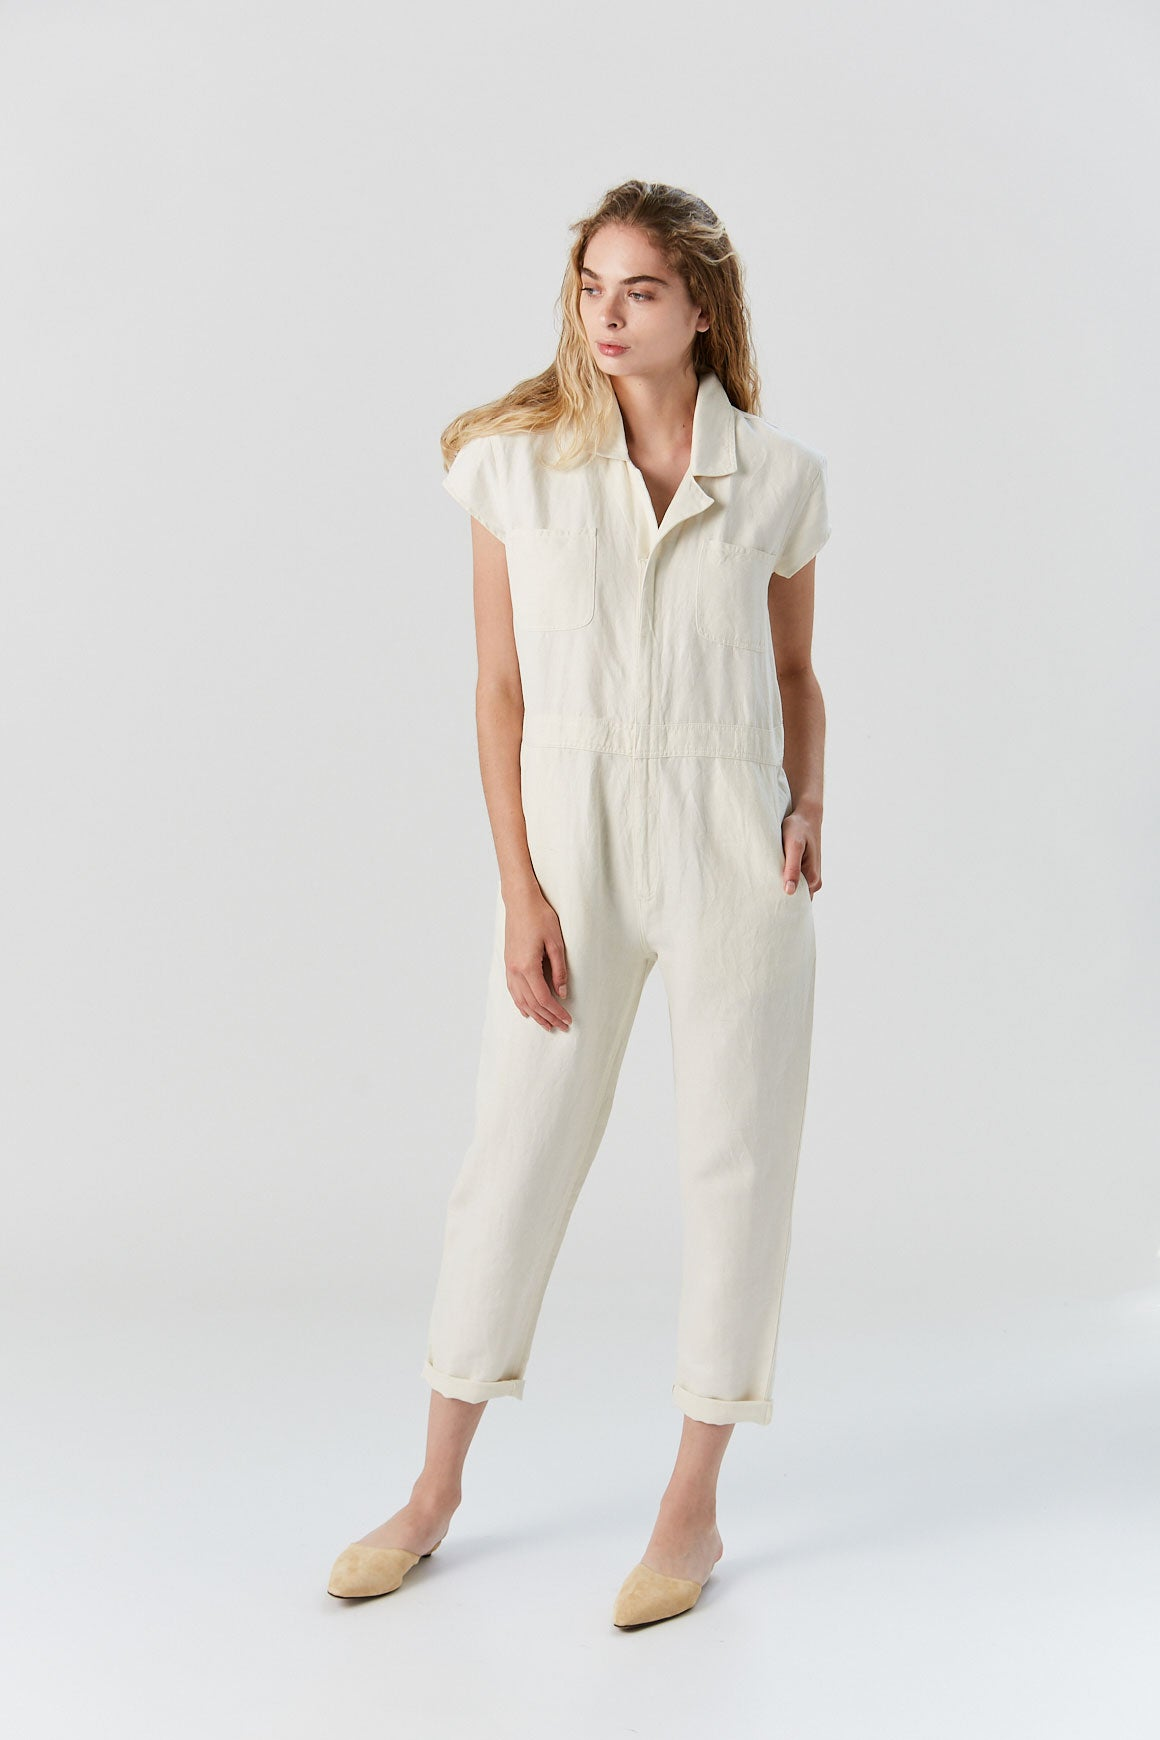 Apiece Apart - Azore Jumpsuit, Cream